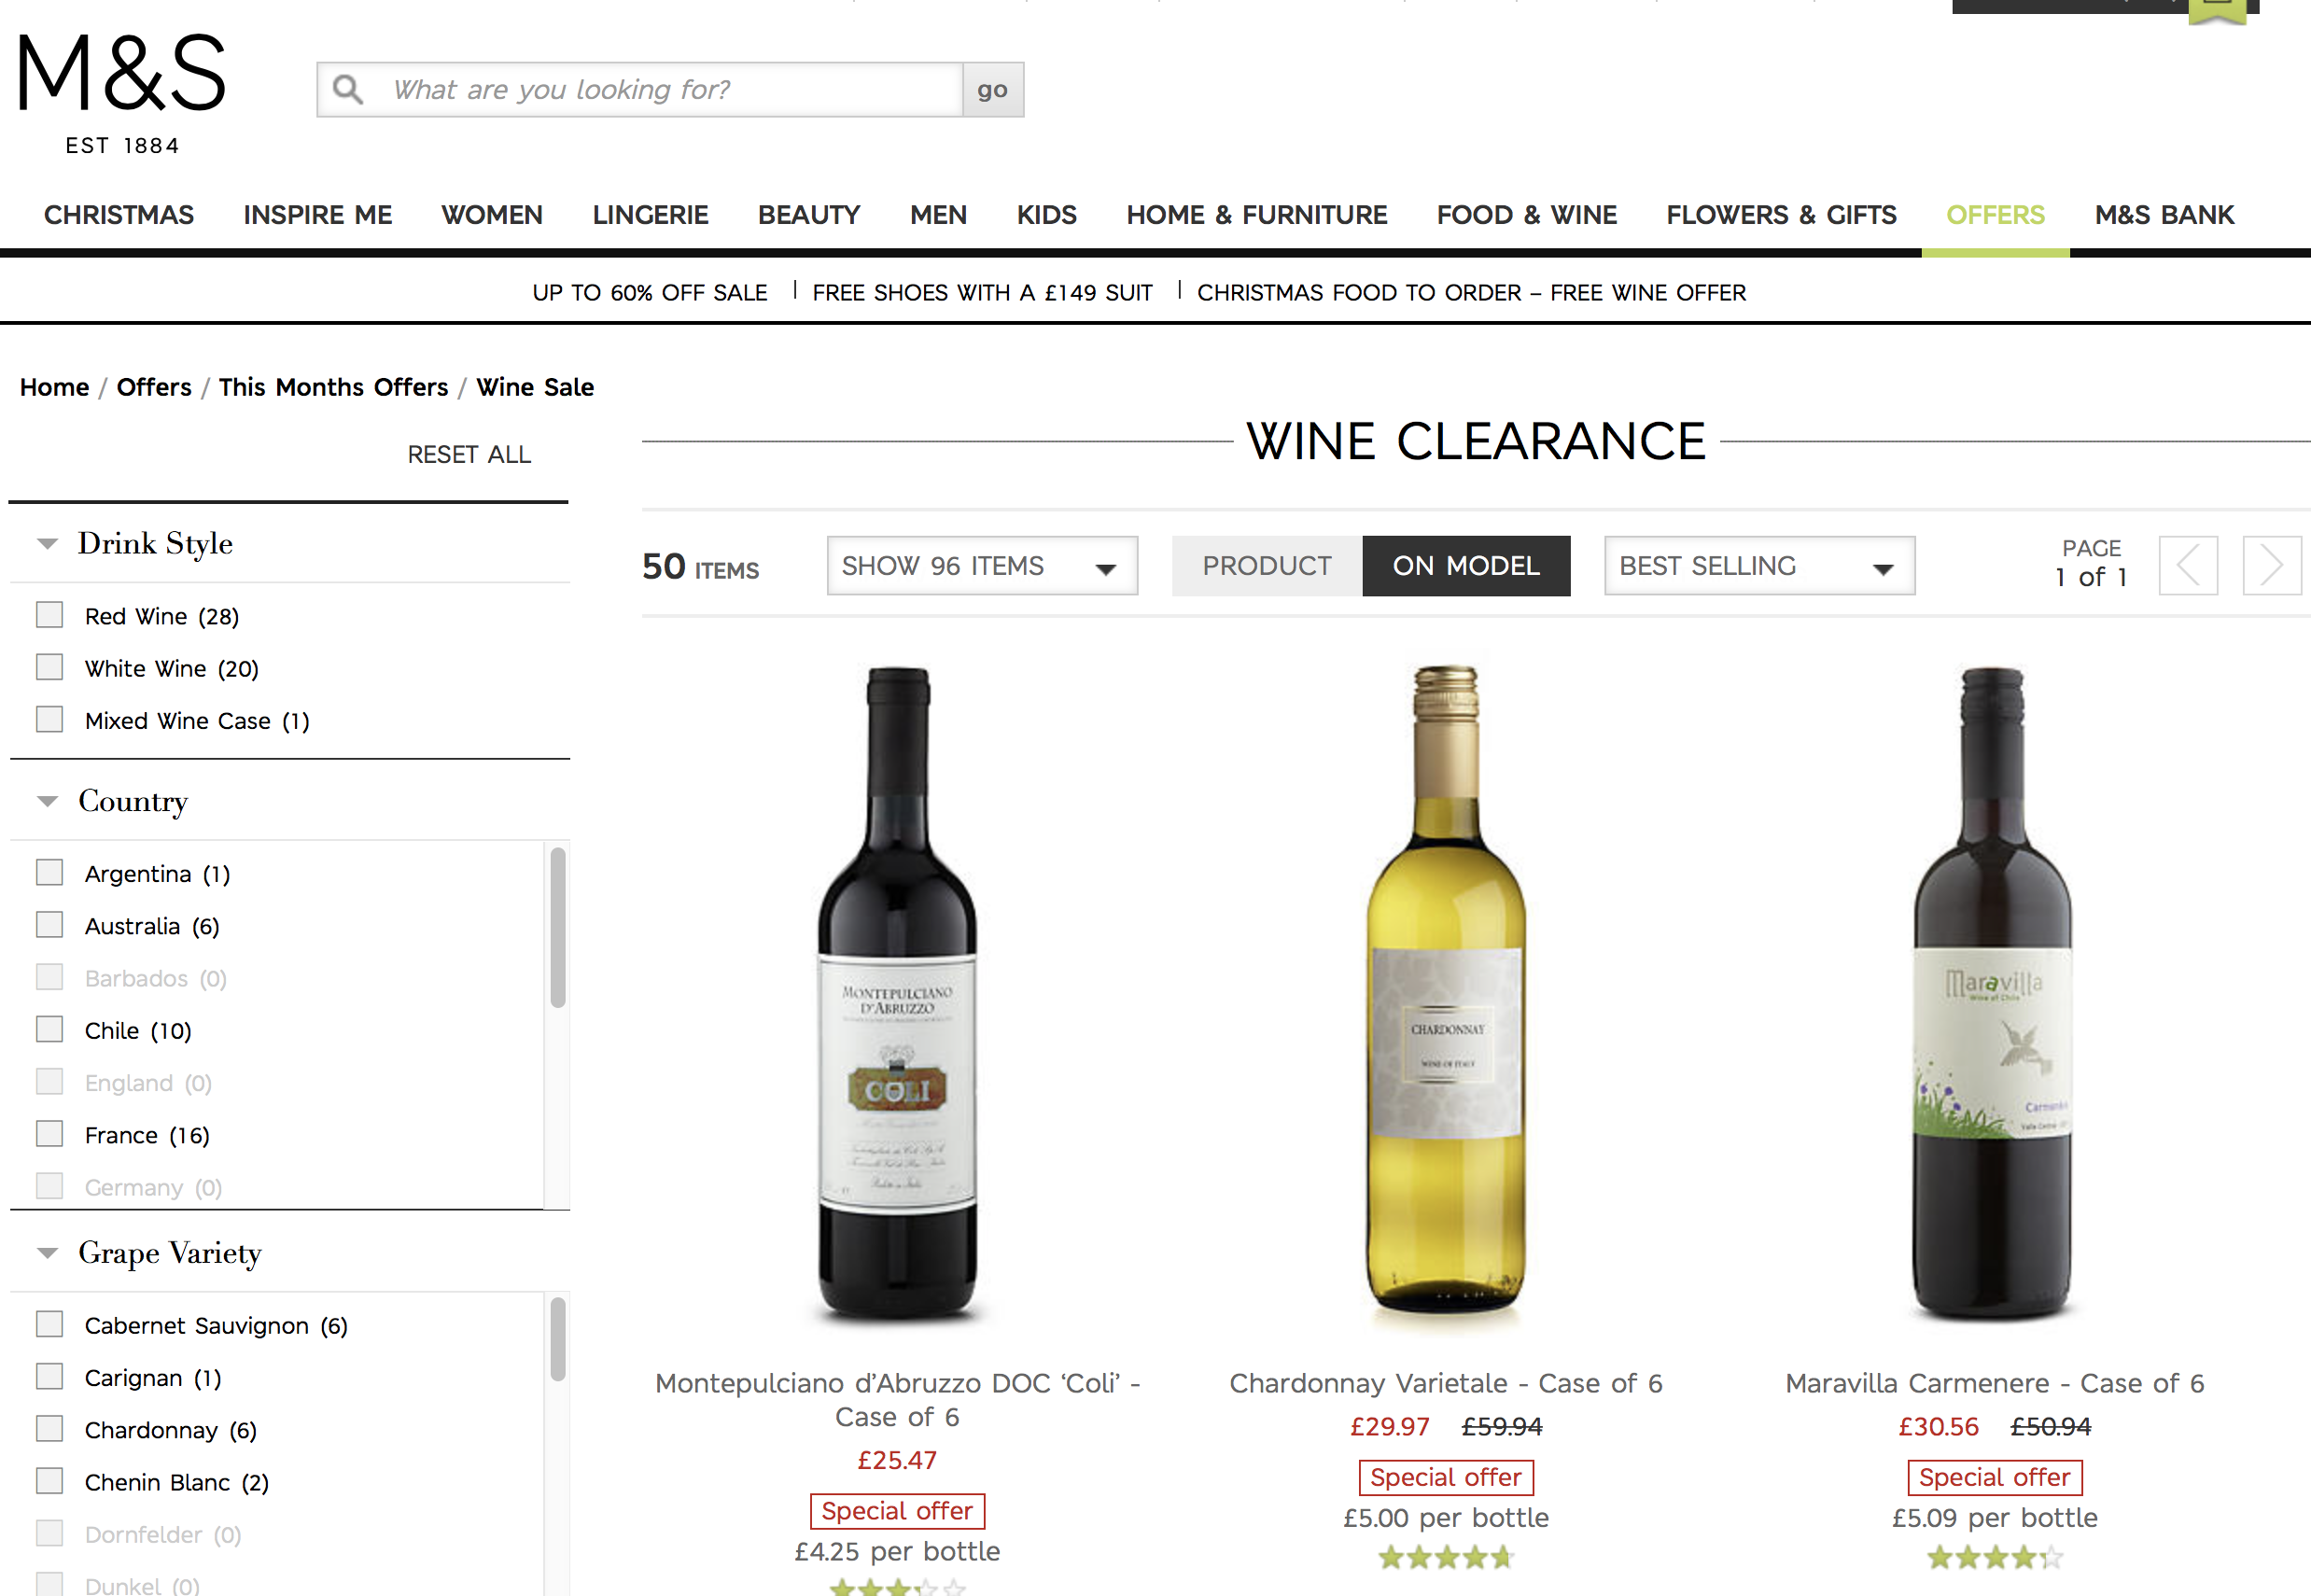 Time to stock up for Christmas: M&S Wine Clearance Sale until the end of October